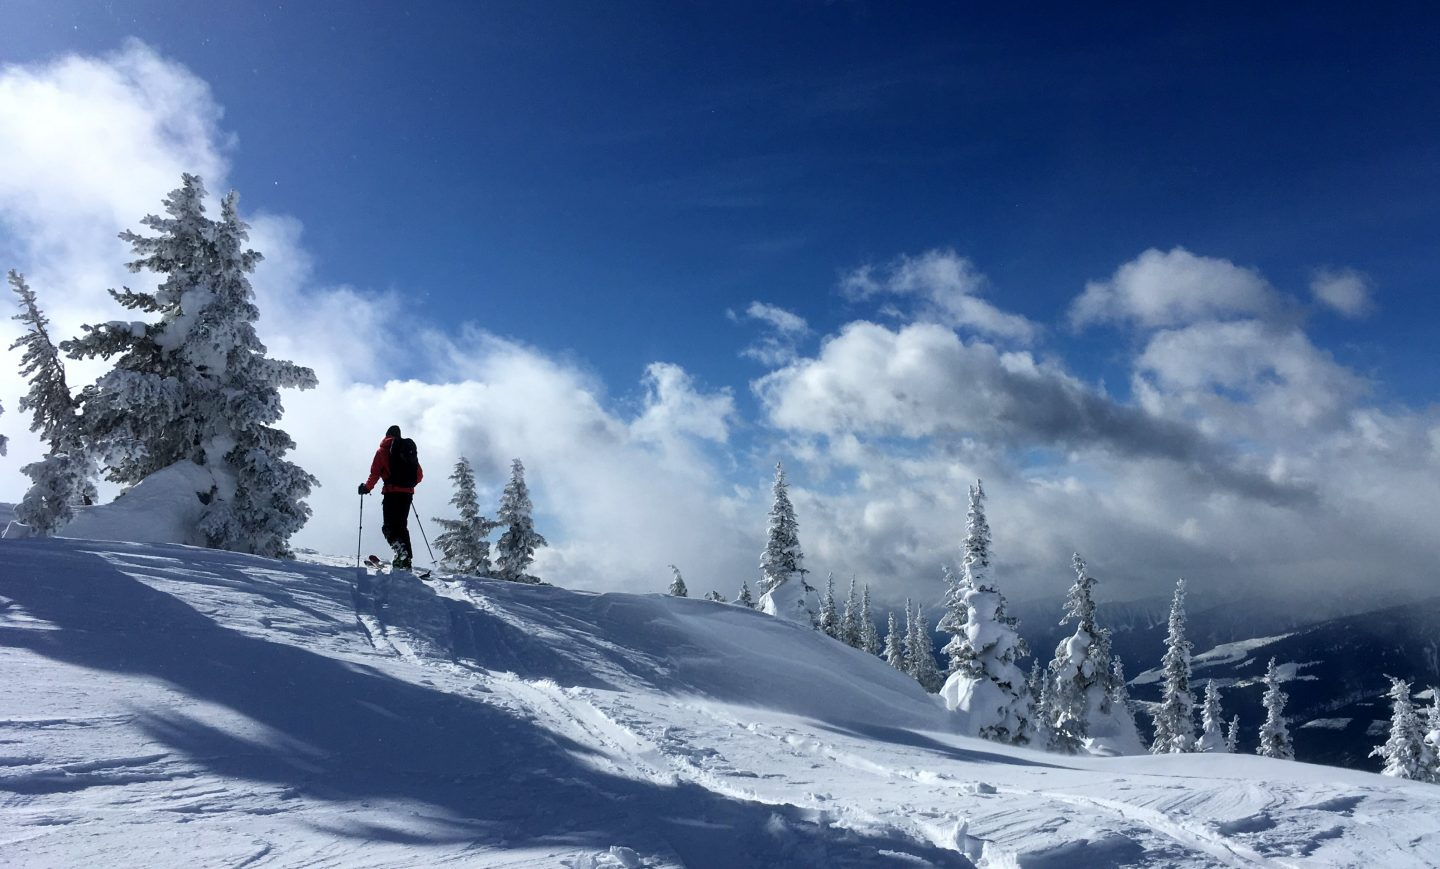 Skitouring in Revelstoke – earn your powder lines